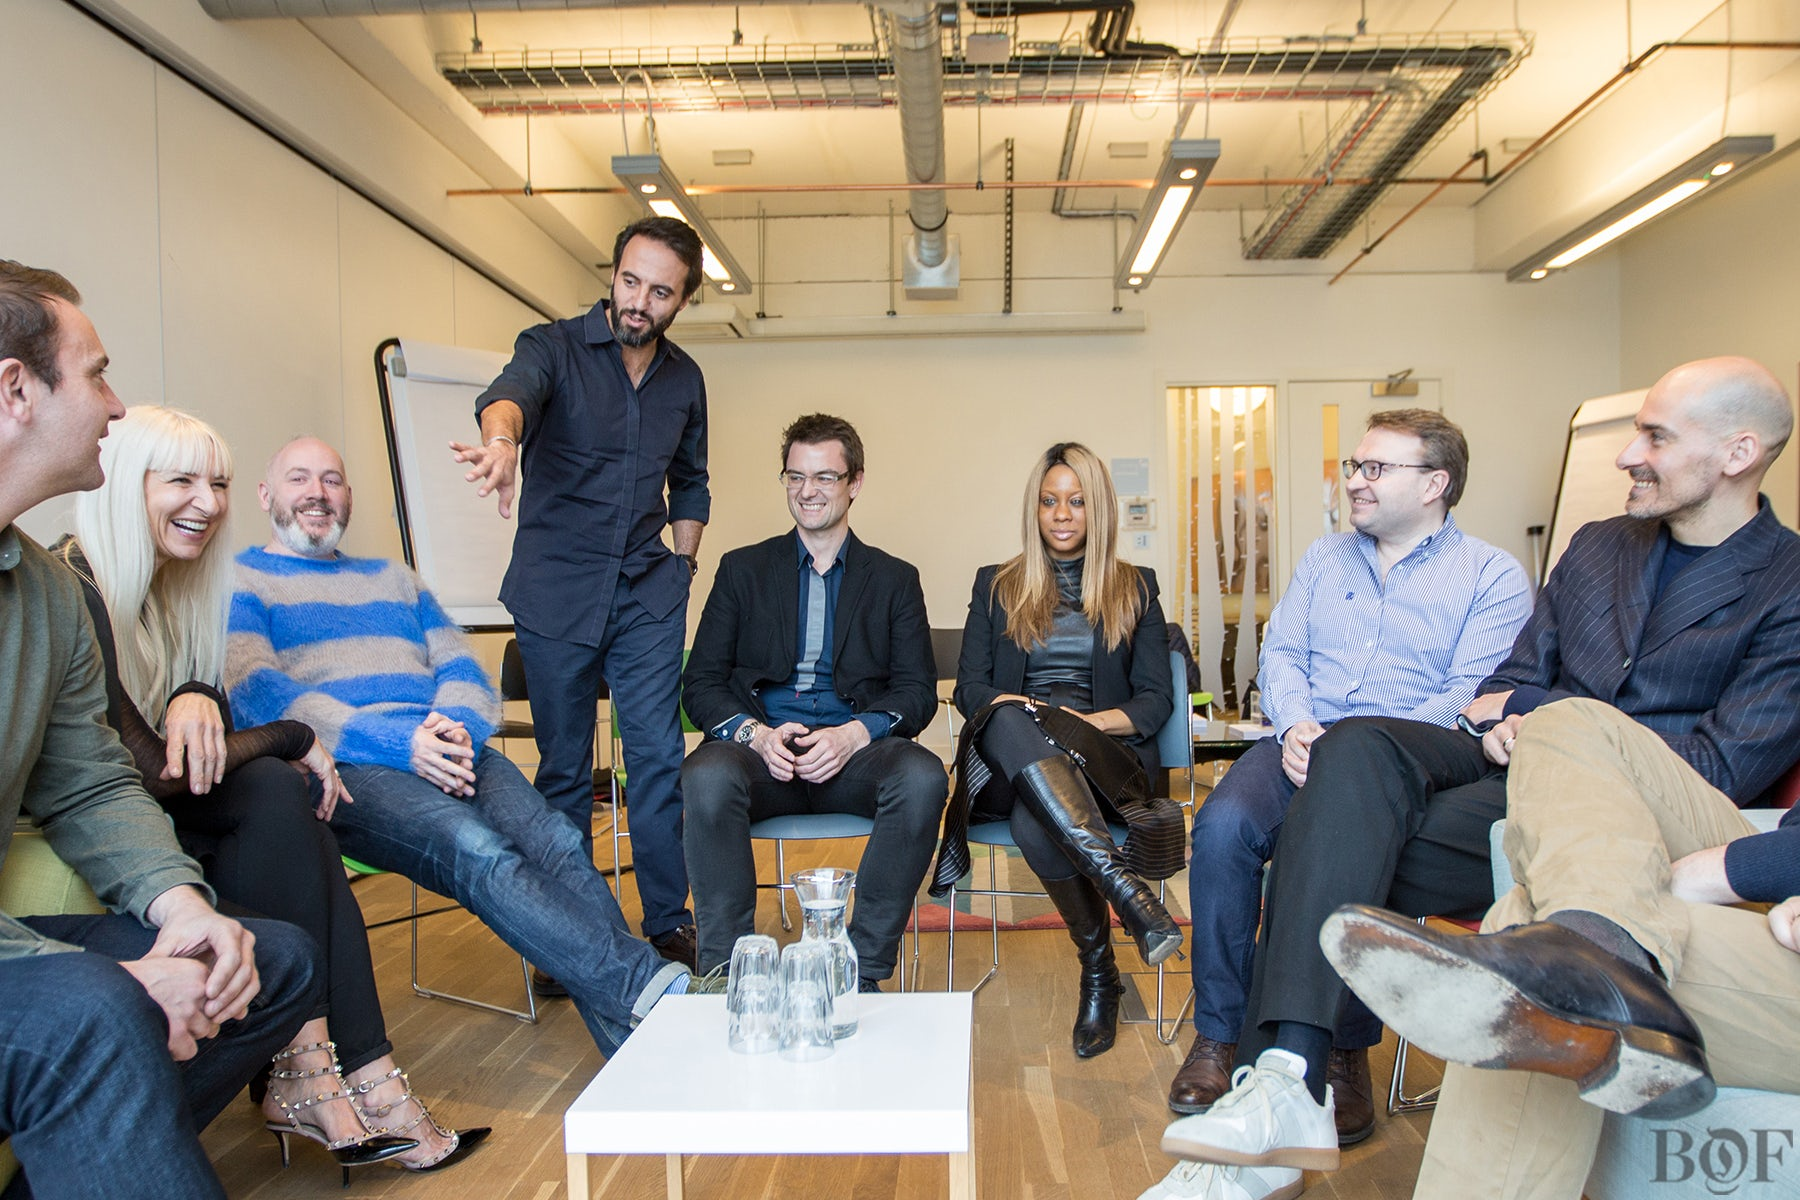 José Neves with Farfetch's senior leadership team on the day of their recent fundraising announcement | Photo: Dan Dennison for BoF